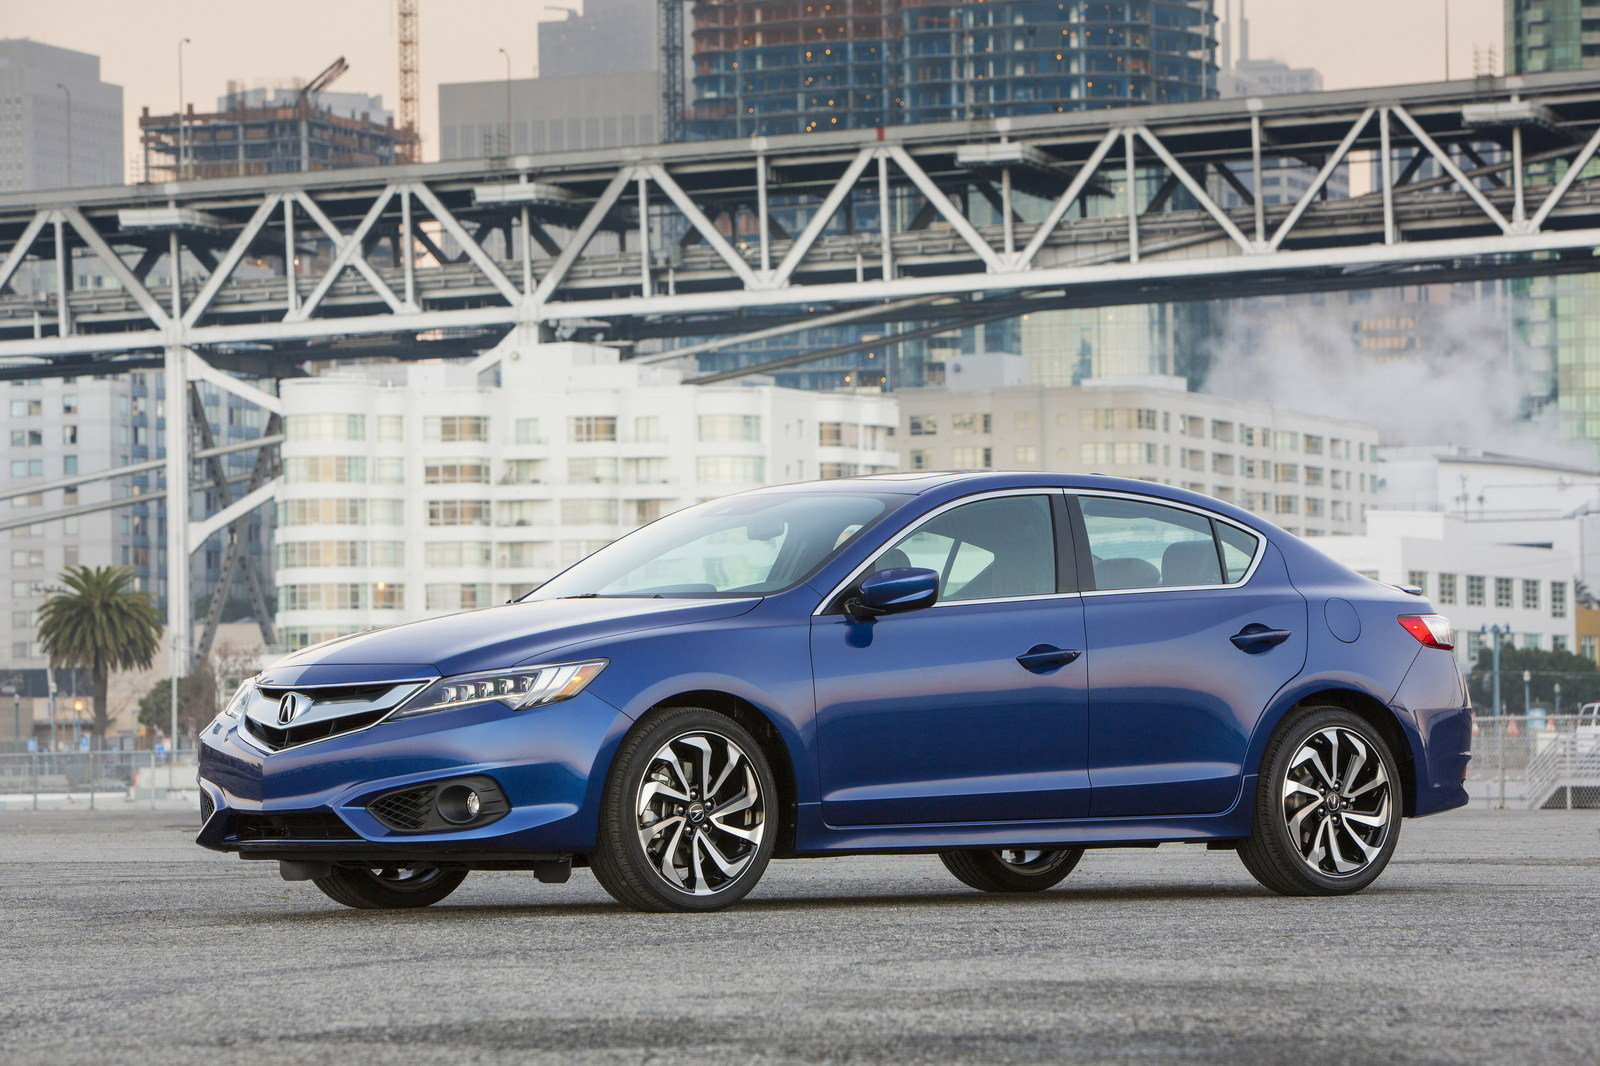 2016 2017 acura ilx picture 672373 car review top speed. Black Bedroom Furniture Sets. Home Design Ideas